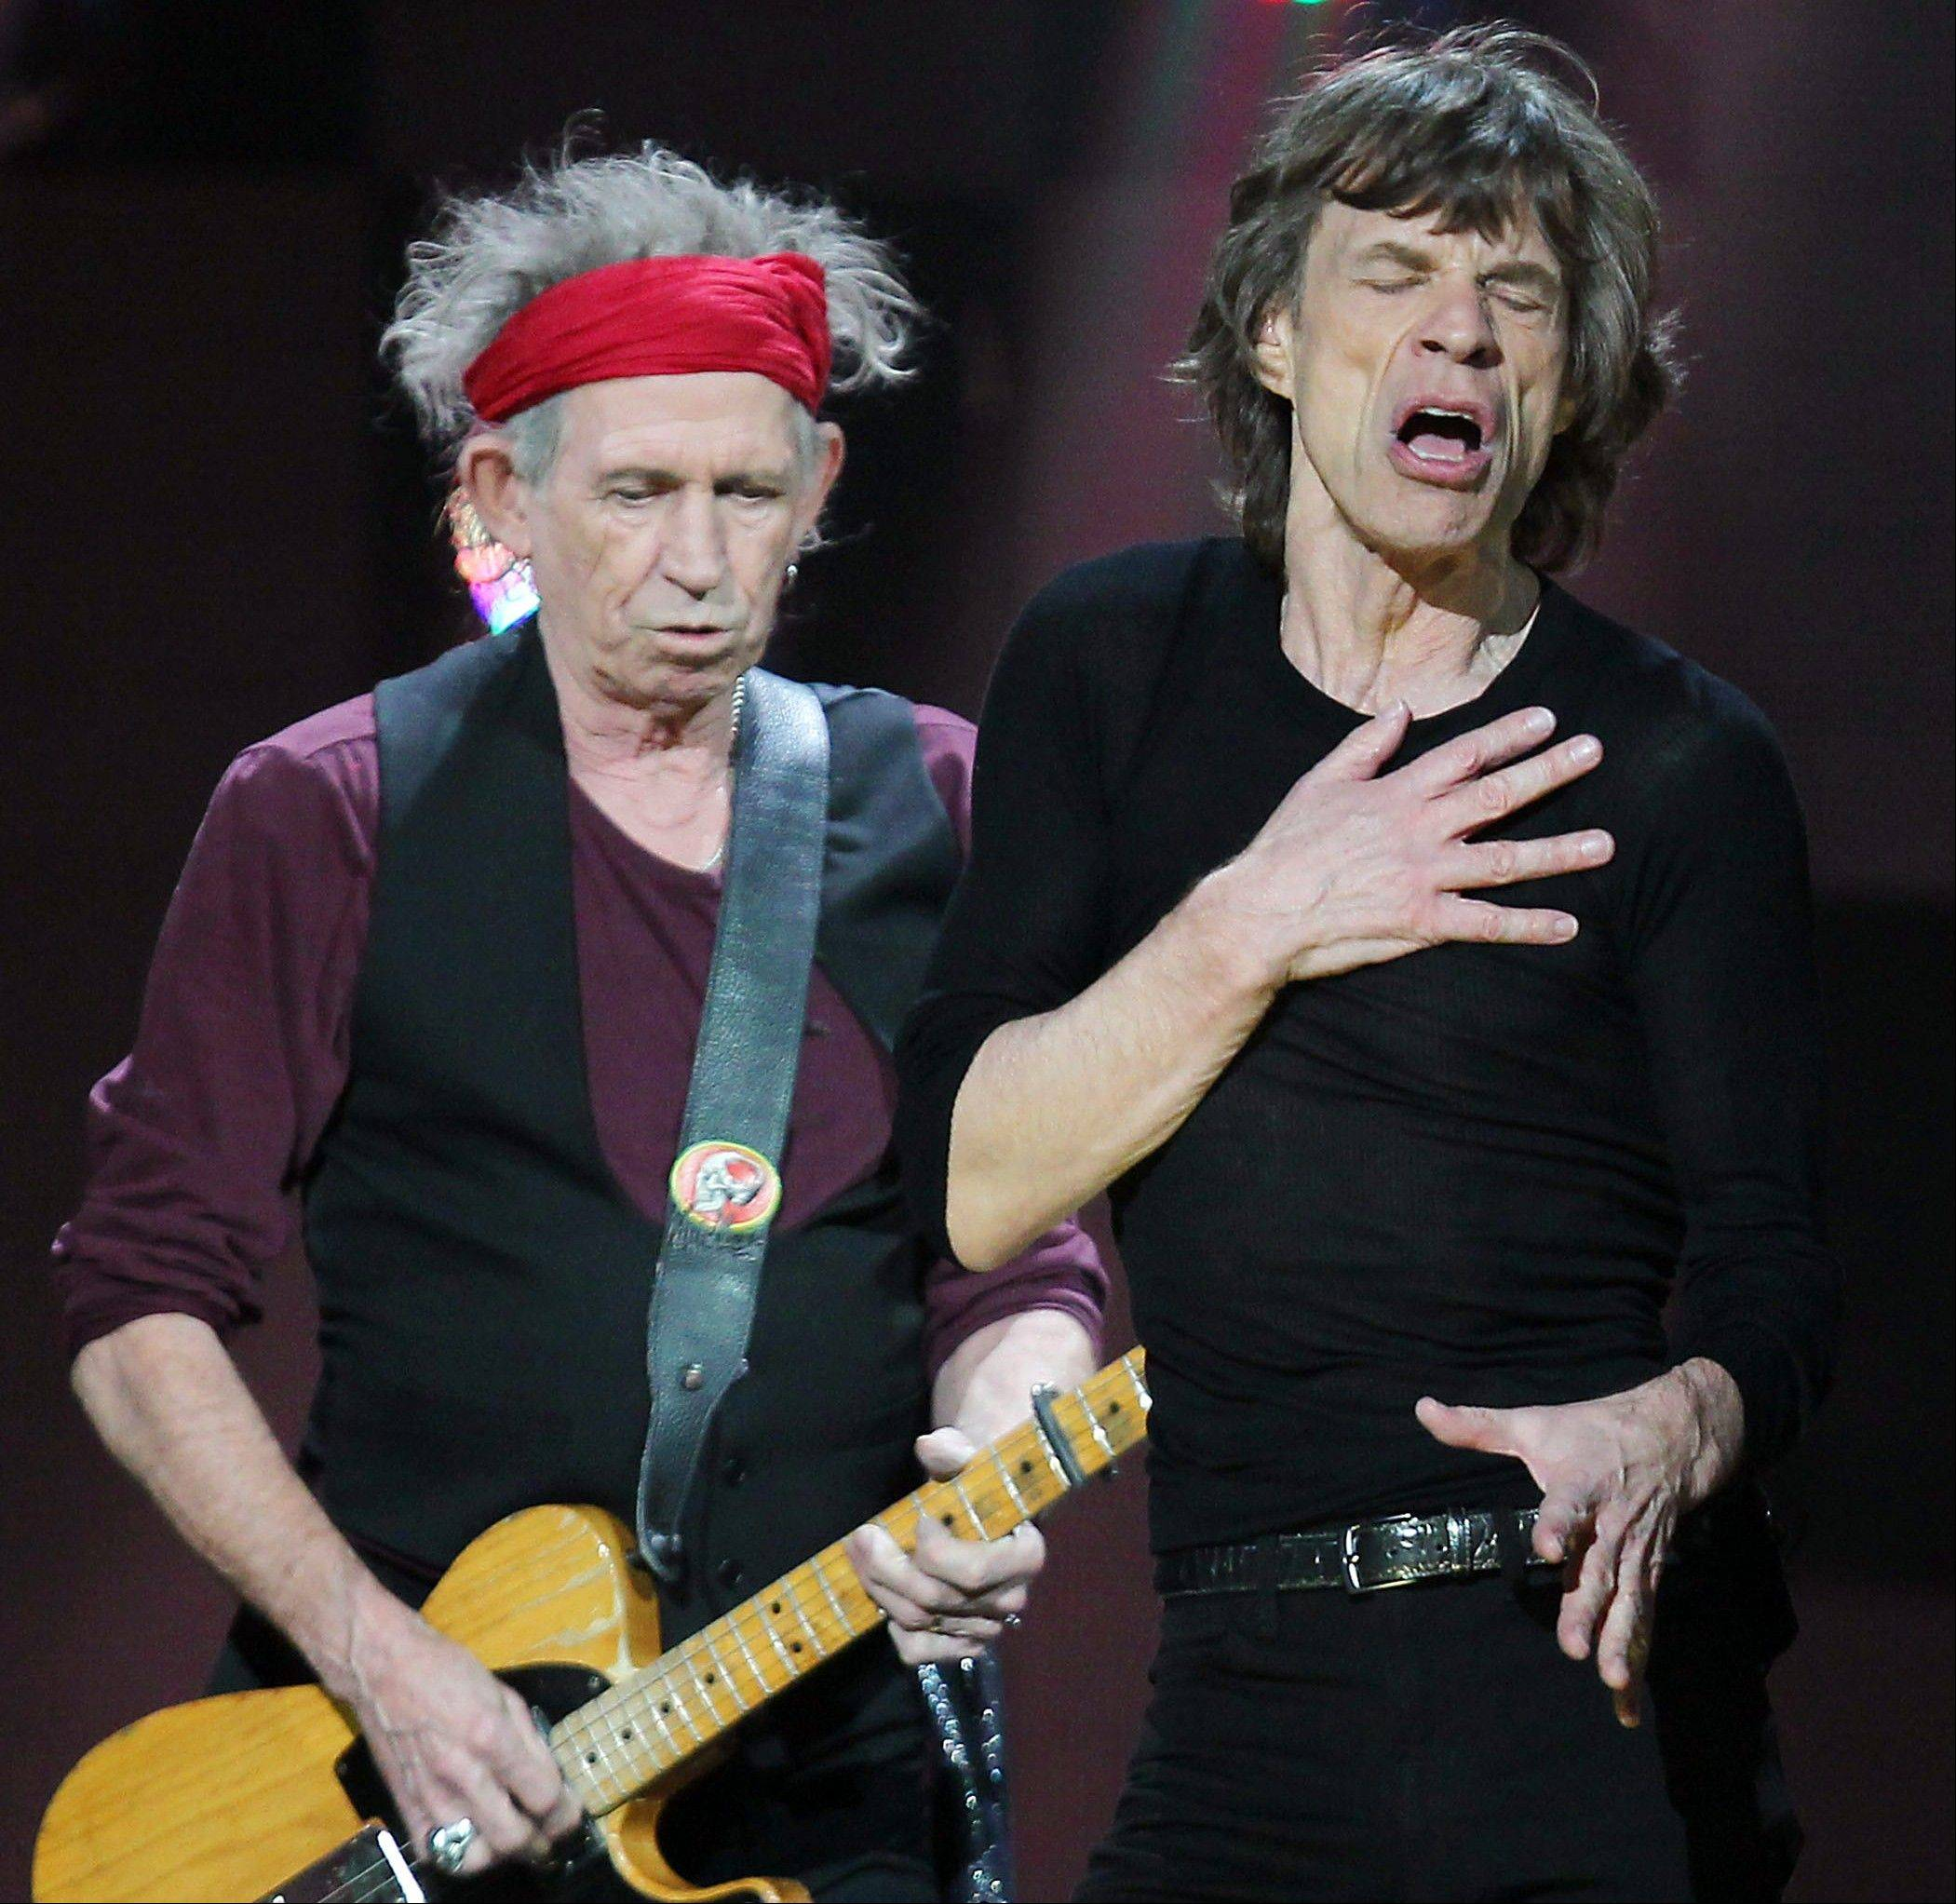 The Rolling Stones, featuring Keith Richards, left, and Mick Jagger, will perform at the United Center in Chicago on Tuesday, May 28, Friday, May 31, and Monday, June 3.